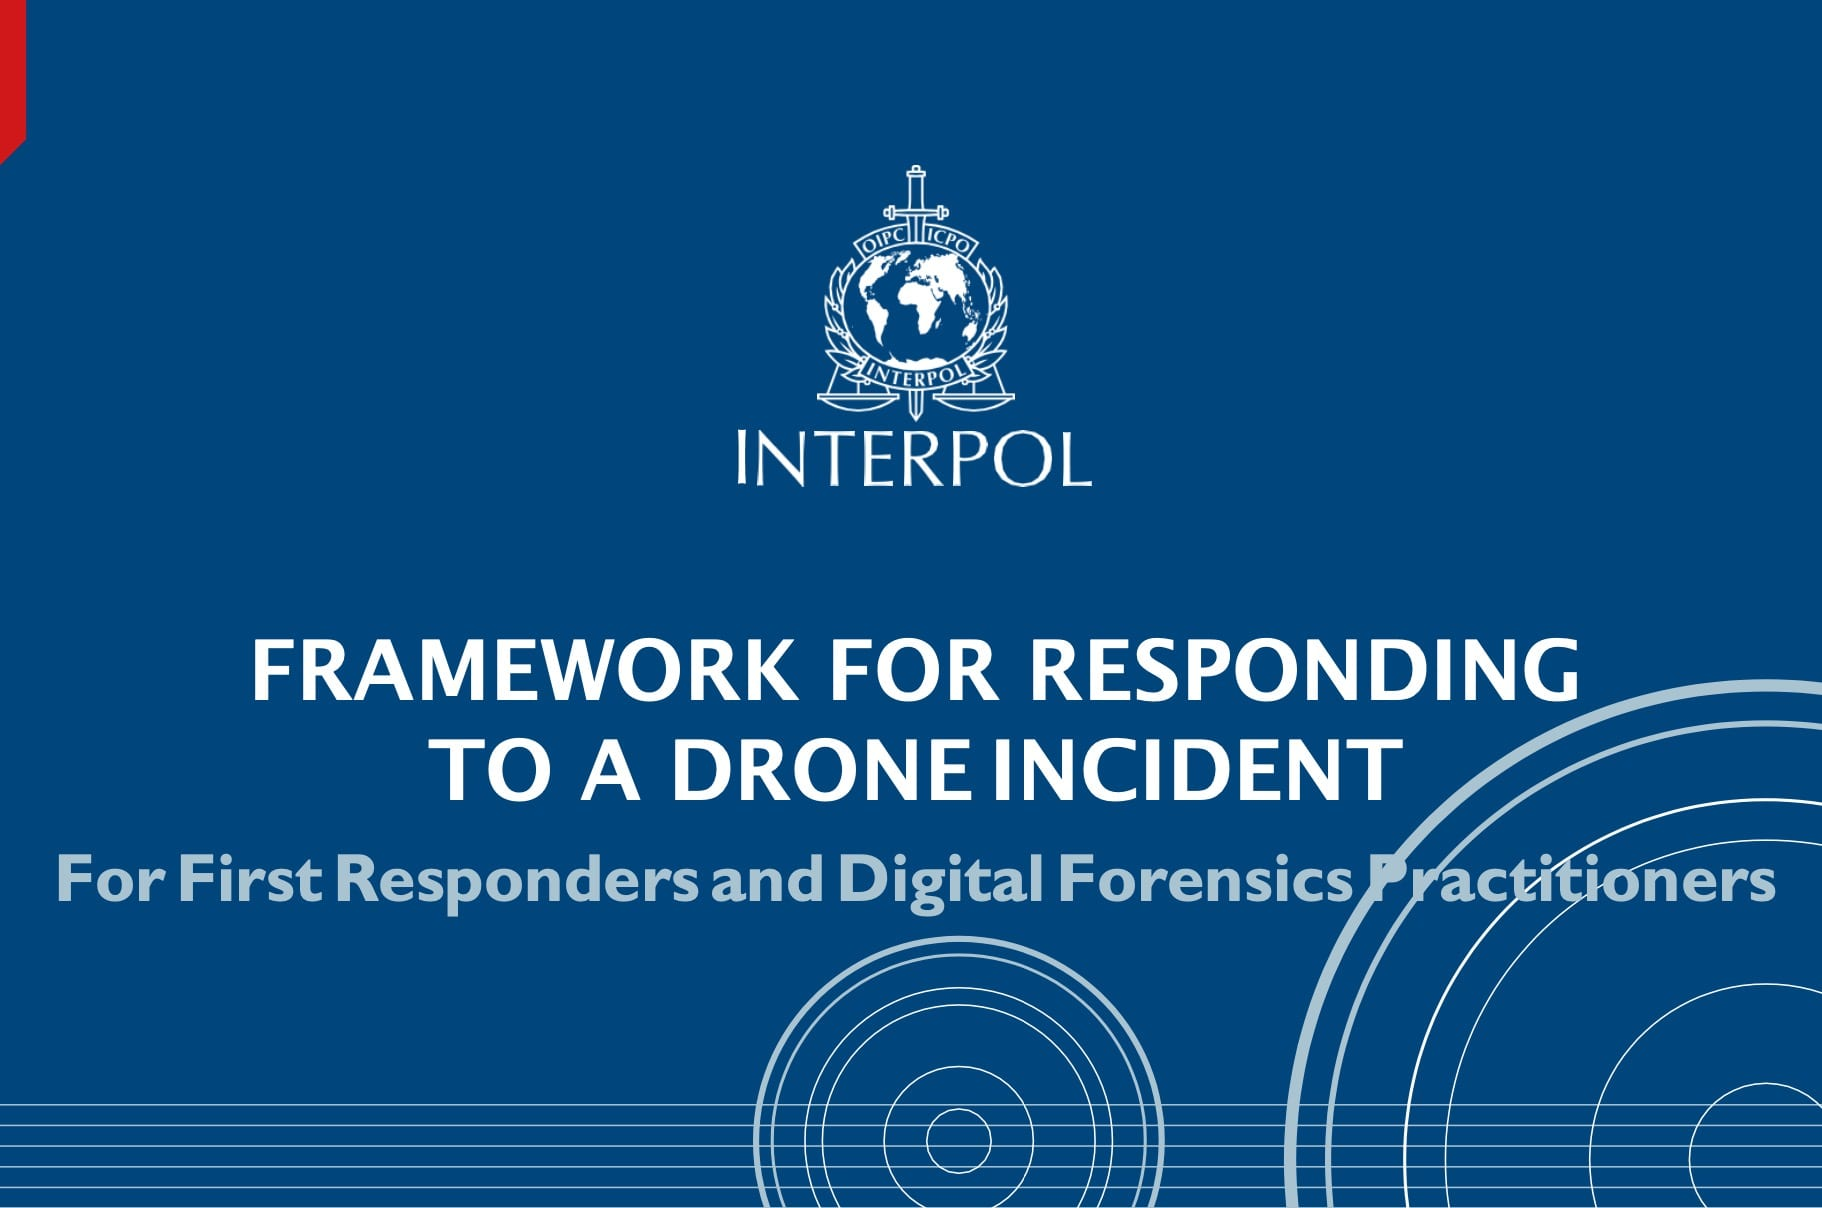 INTERPOL Framework for Responding to a Drone Incident for First Responders and Digital Forensics Practitioners